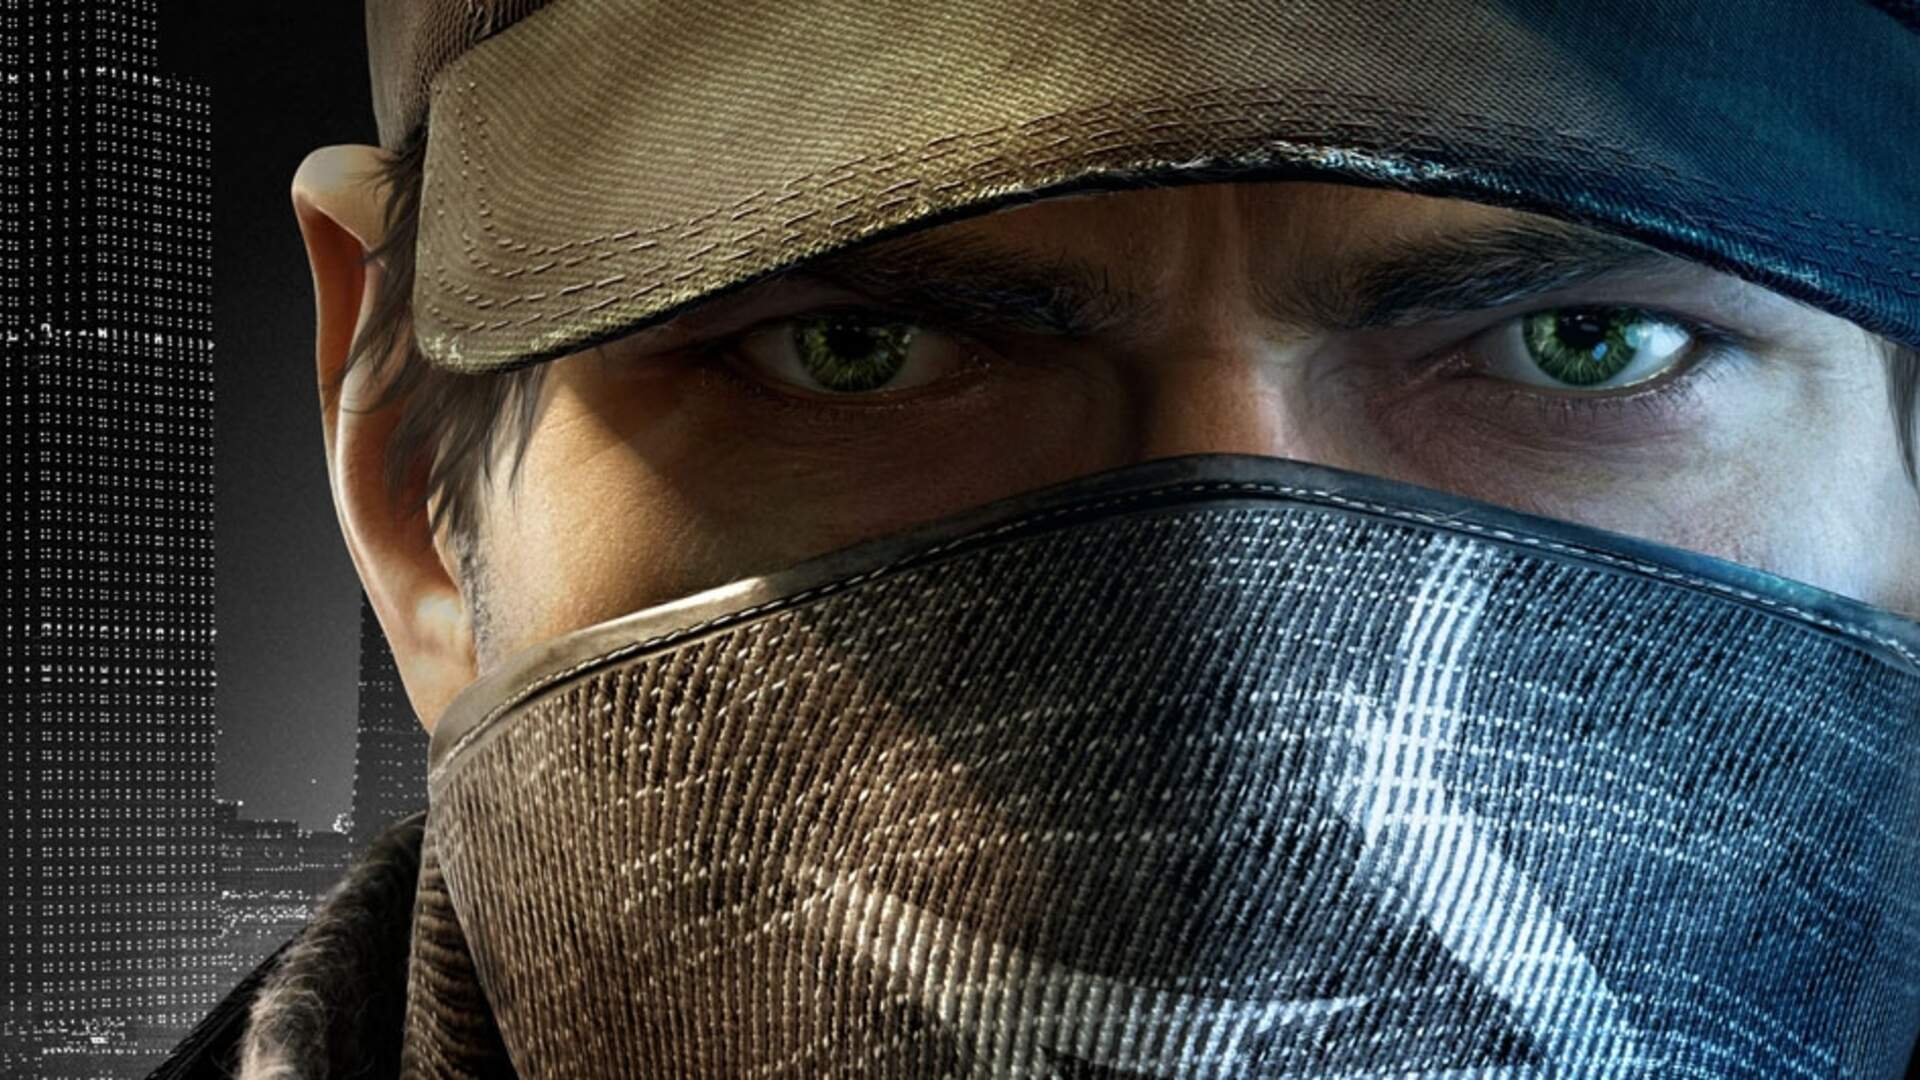 Watch Dogs' PC Specs: Not for Lightweights